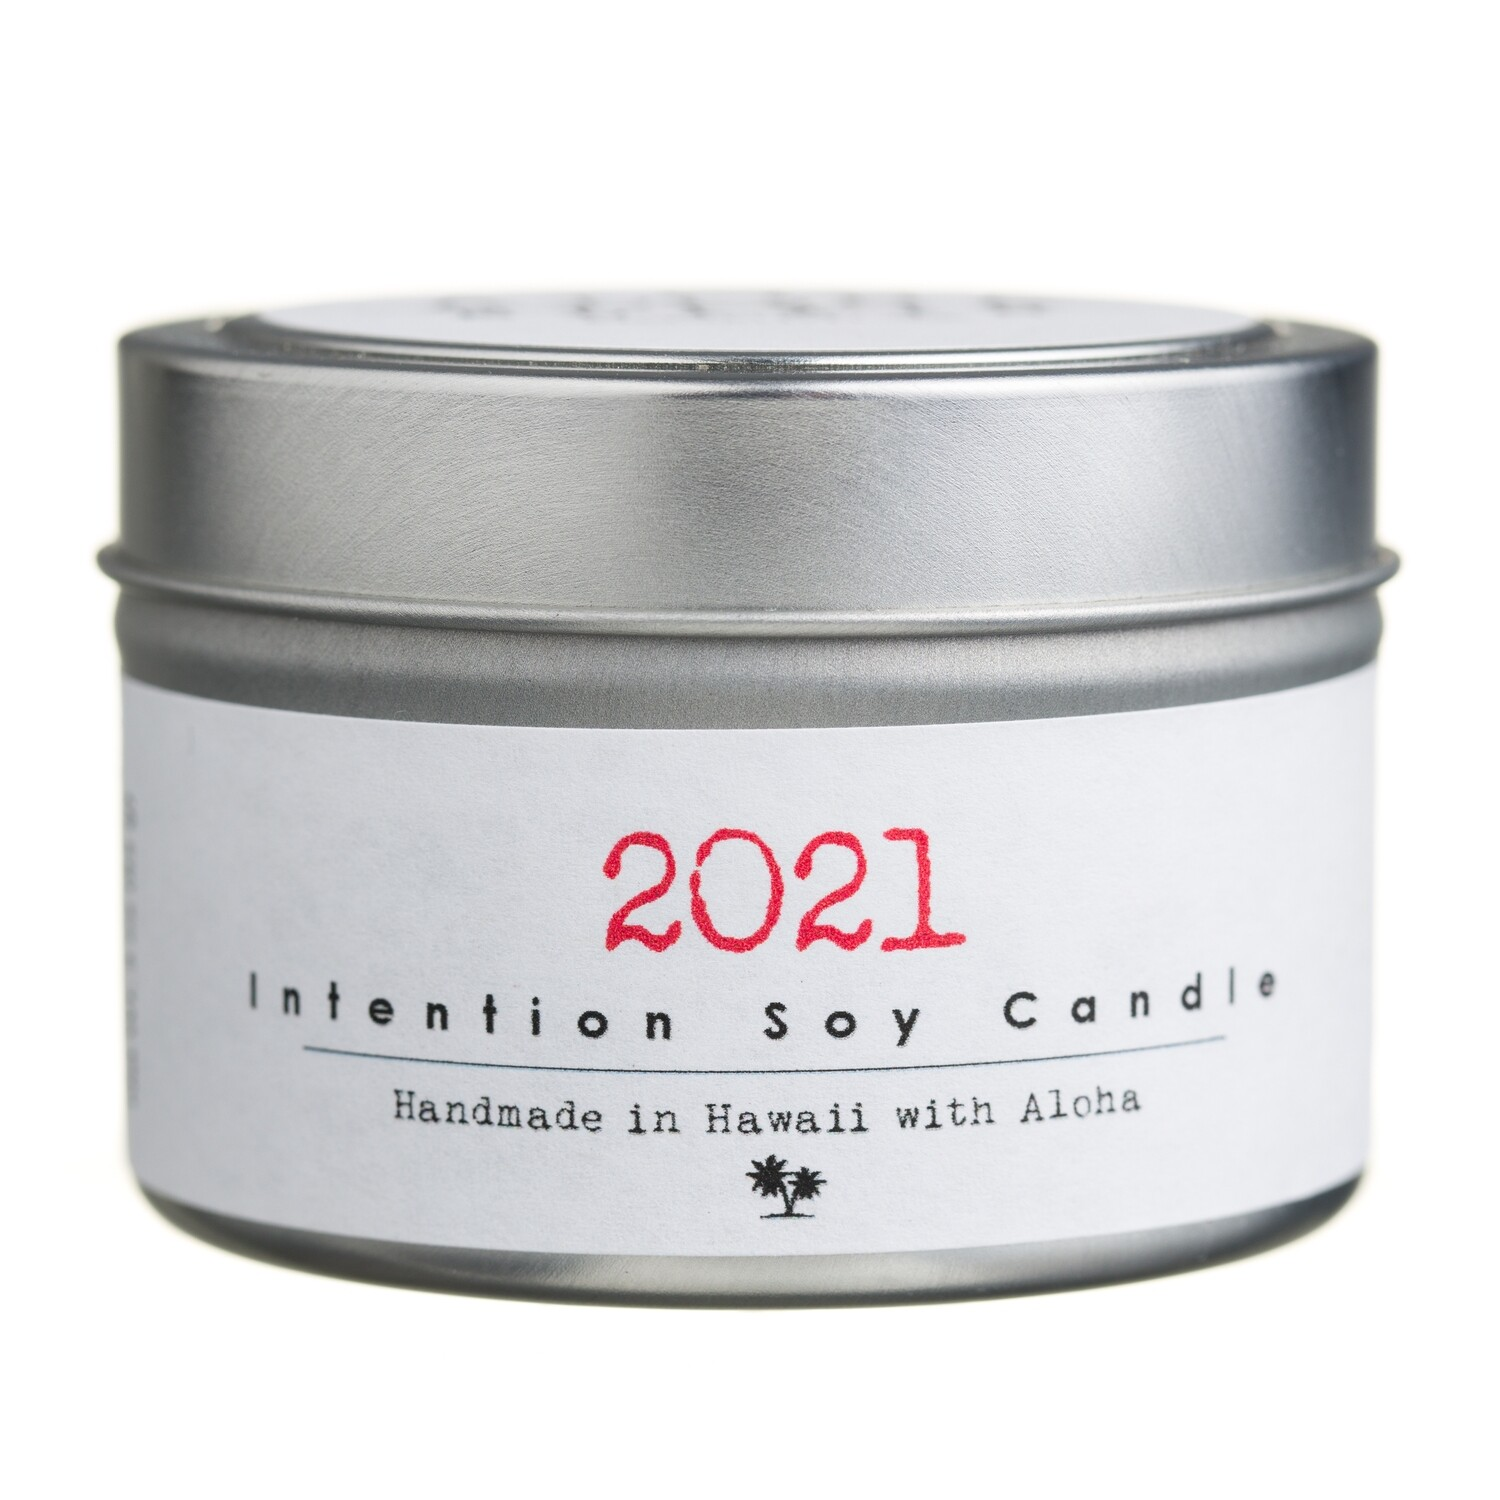 2021 Candle for a limited time only